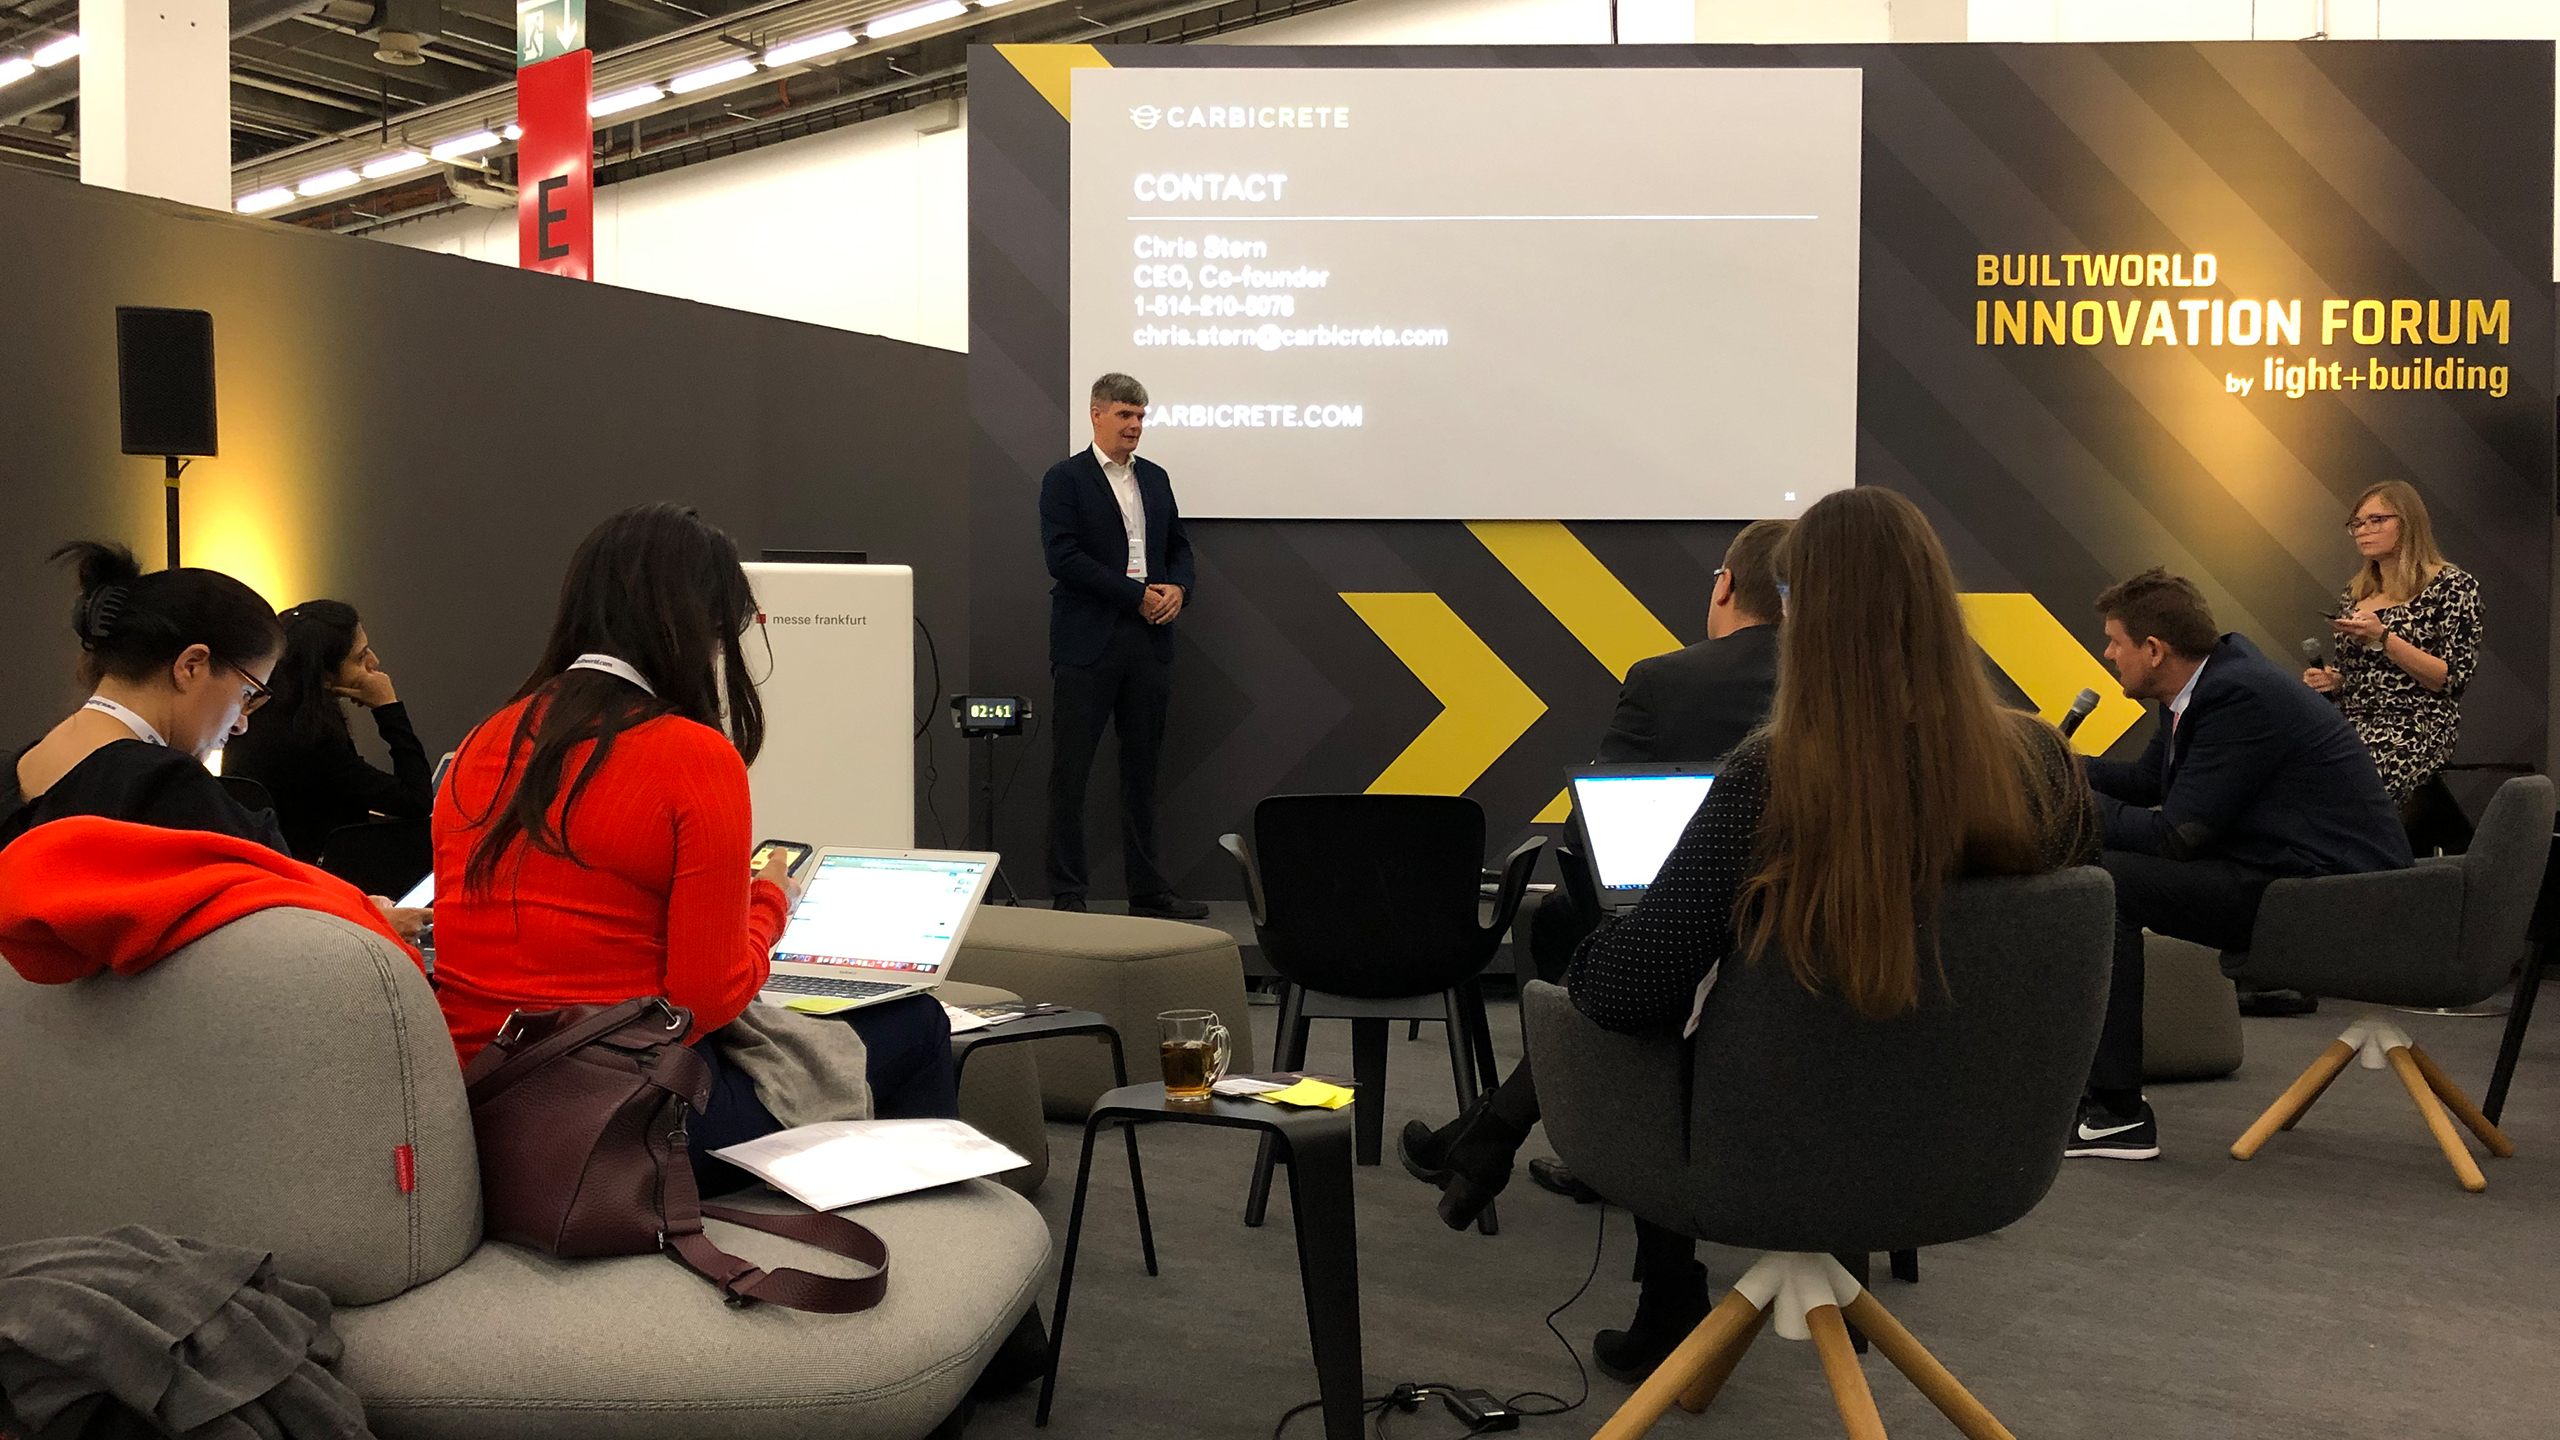 Builtworld Construction Innovation Contest: The two-day prepitch in hall 9.0 of Messe Frankfurt brought together jurors from the best-known established companies in the real estate and construction sectors as well as building technology. (Source: Messe Frankfurt / EBU 62 2019)